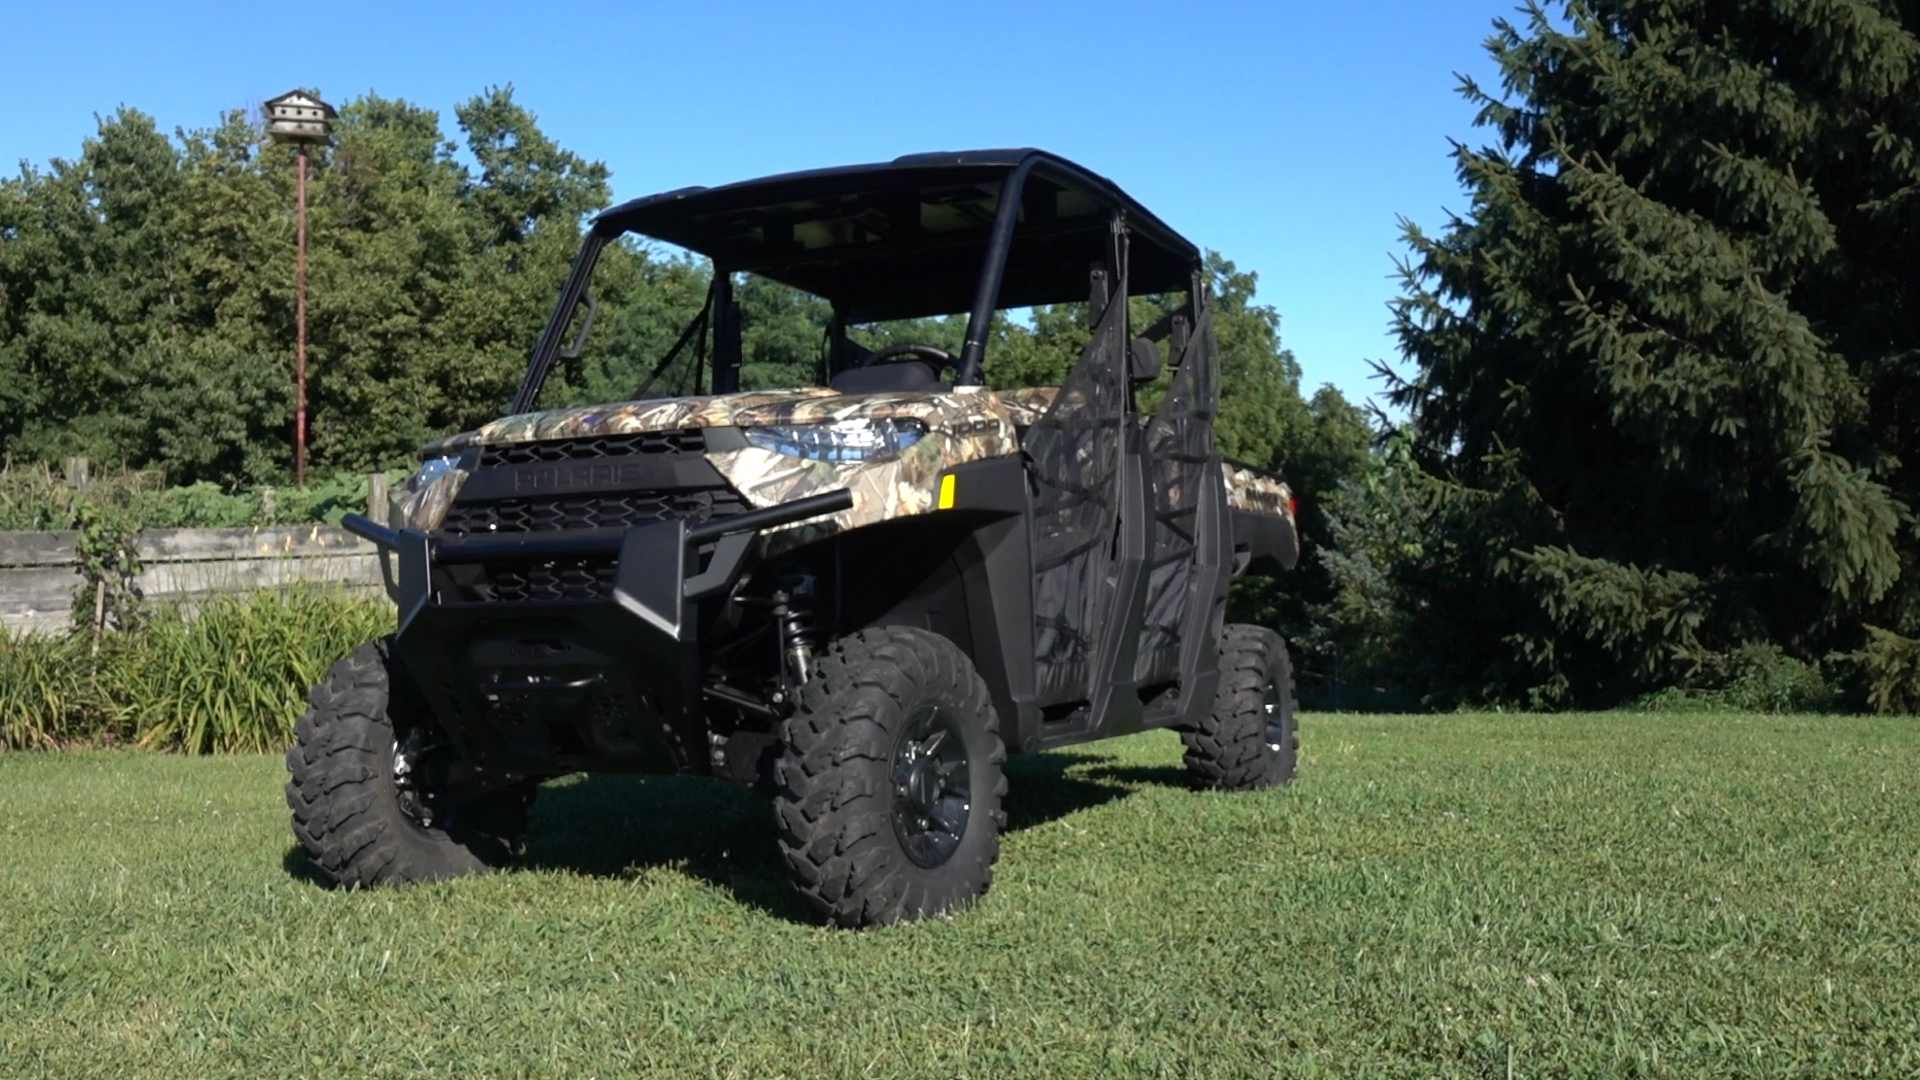 2019 Polaris Ranger Crew XP 1000 Test Review: WITH VIDEO